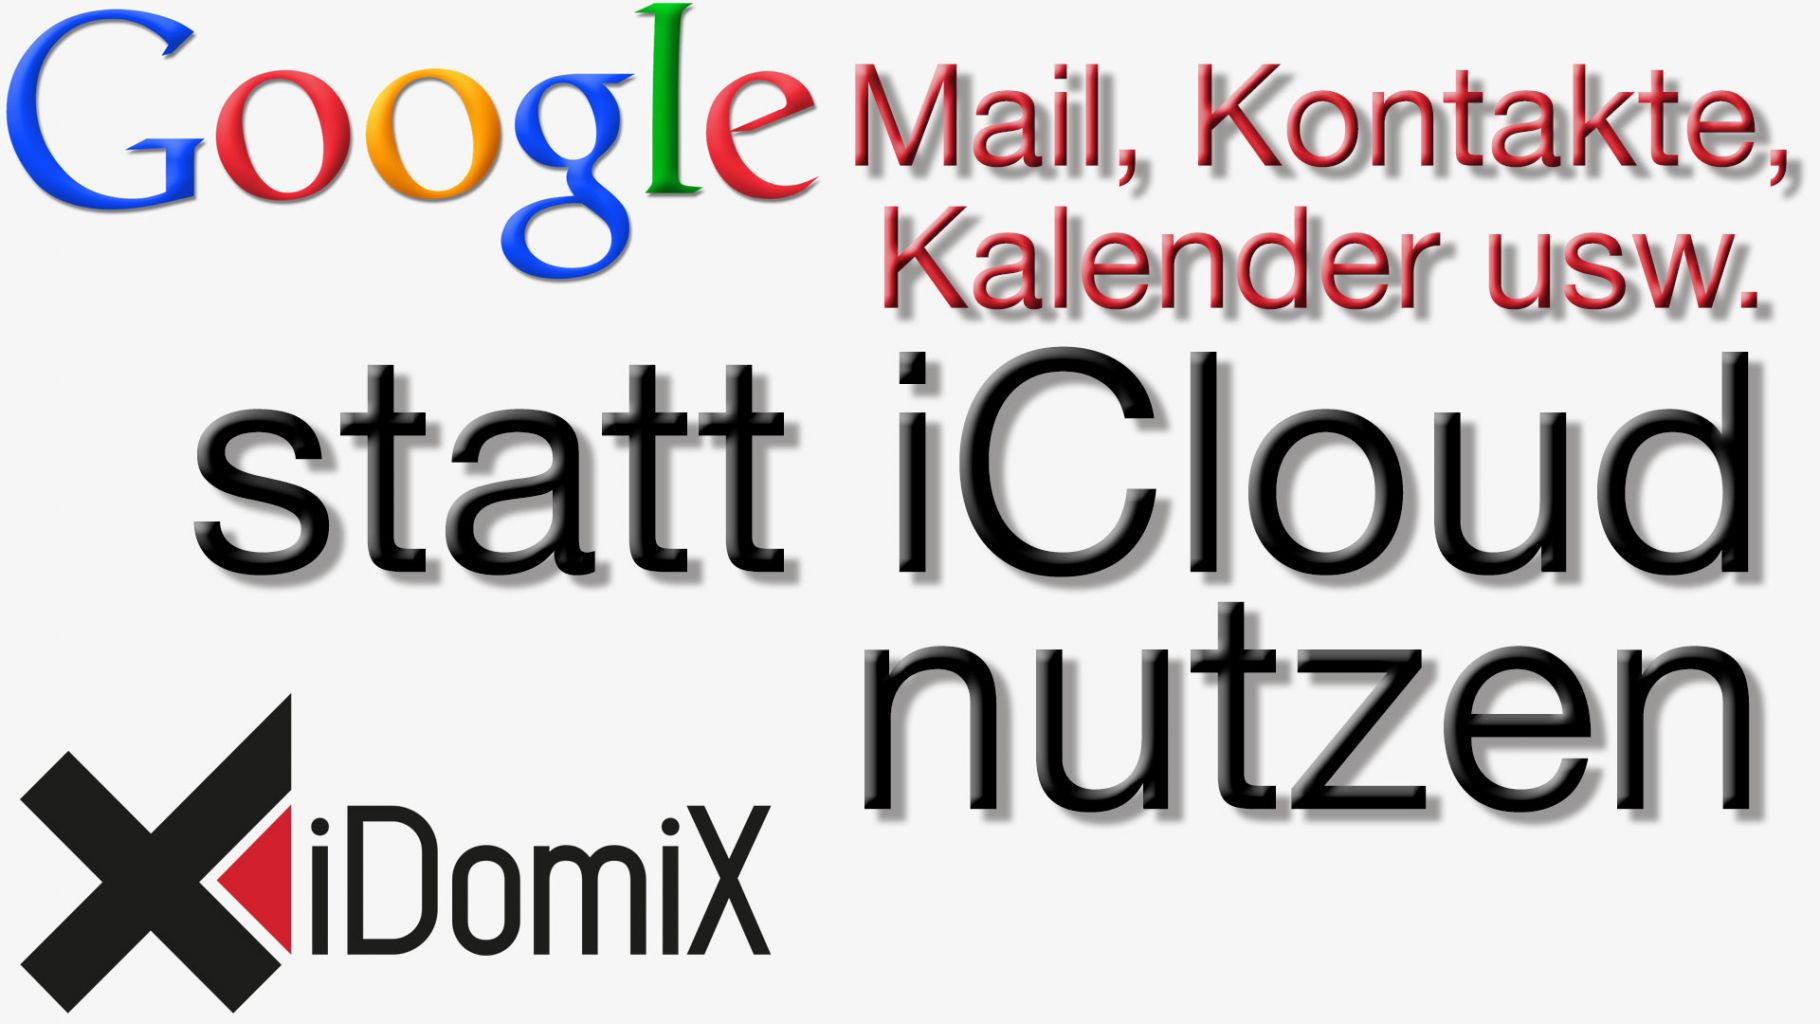 282-googlestatticloud